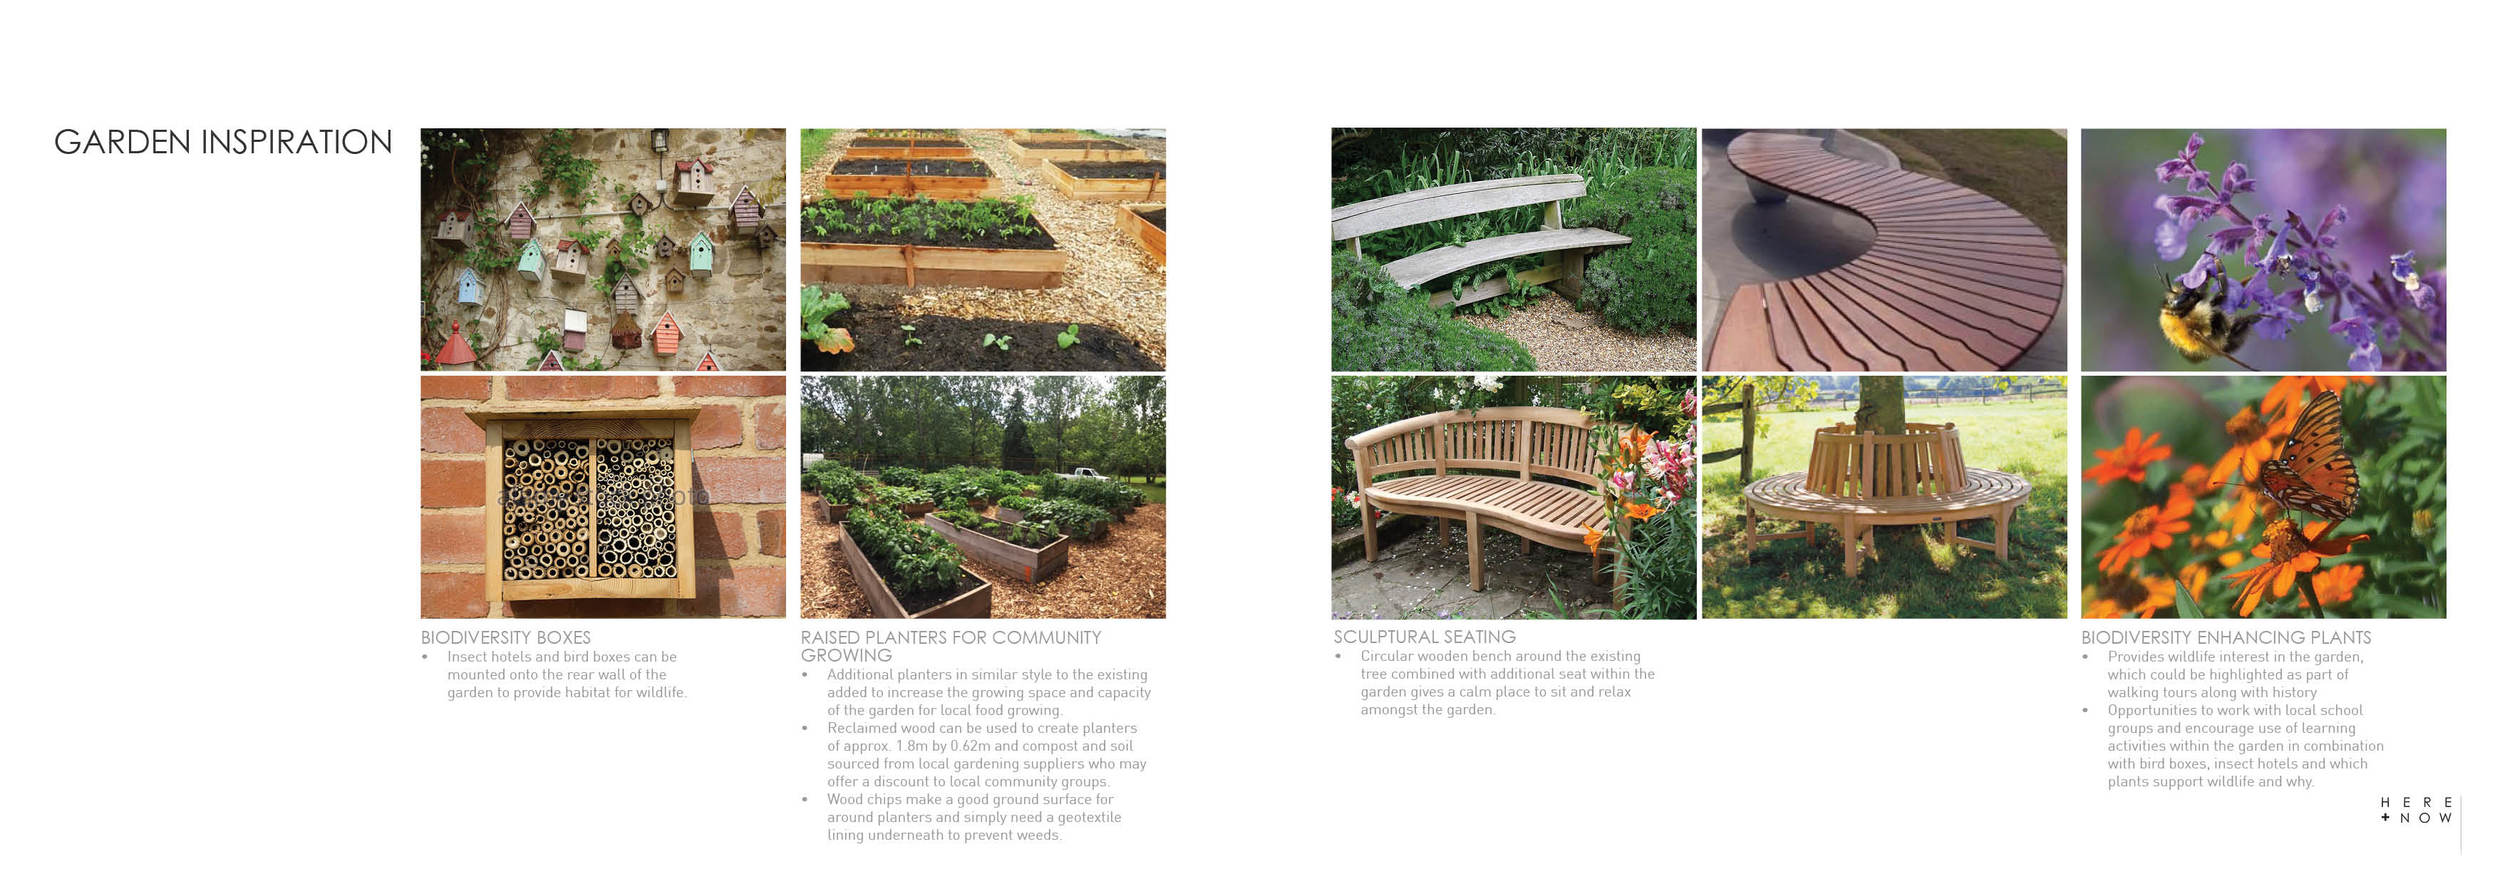 160407_HERE+NOW_Newhaven Community Garden_Proposed Layout lo res2.jpg